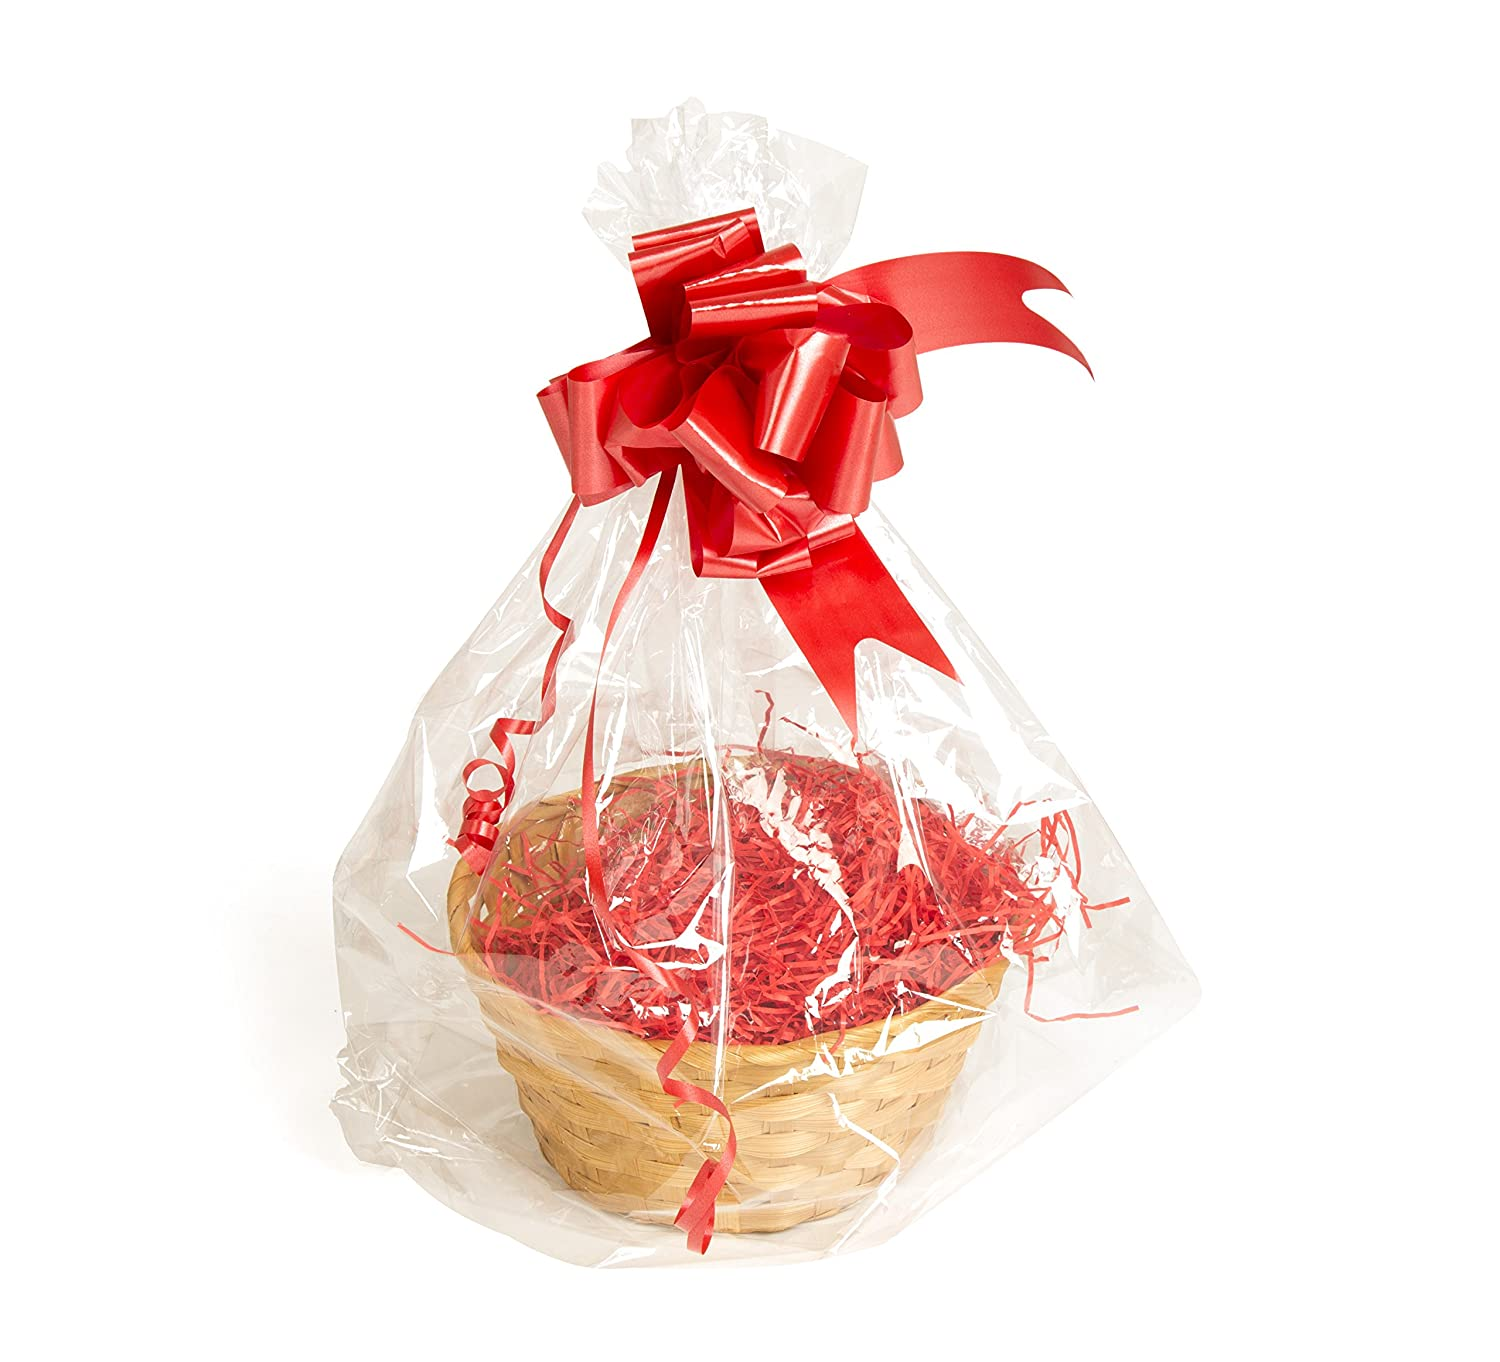 Your Gift Basket - Round Bamboo Basket Tray & DIY Hamper Kit with Red Shred, Red Bow and Clear Gift Wrap